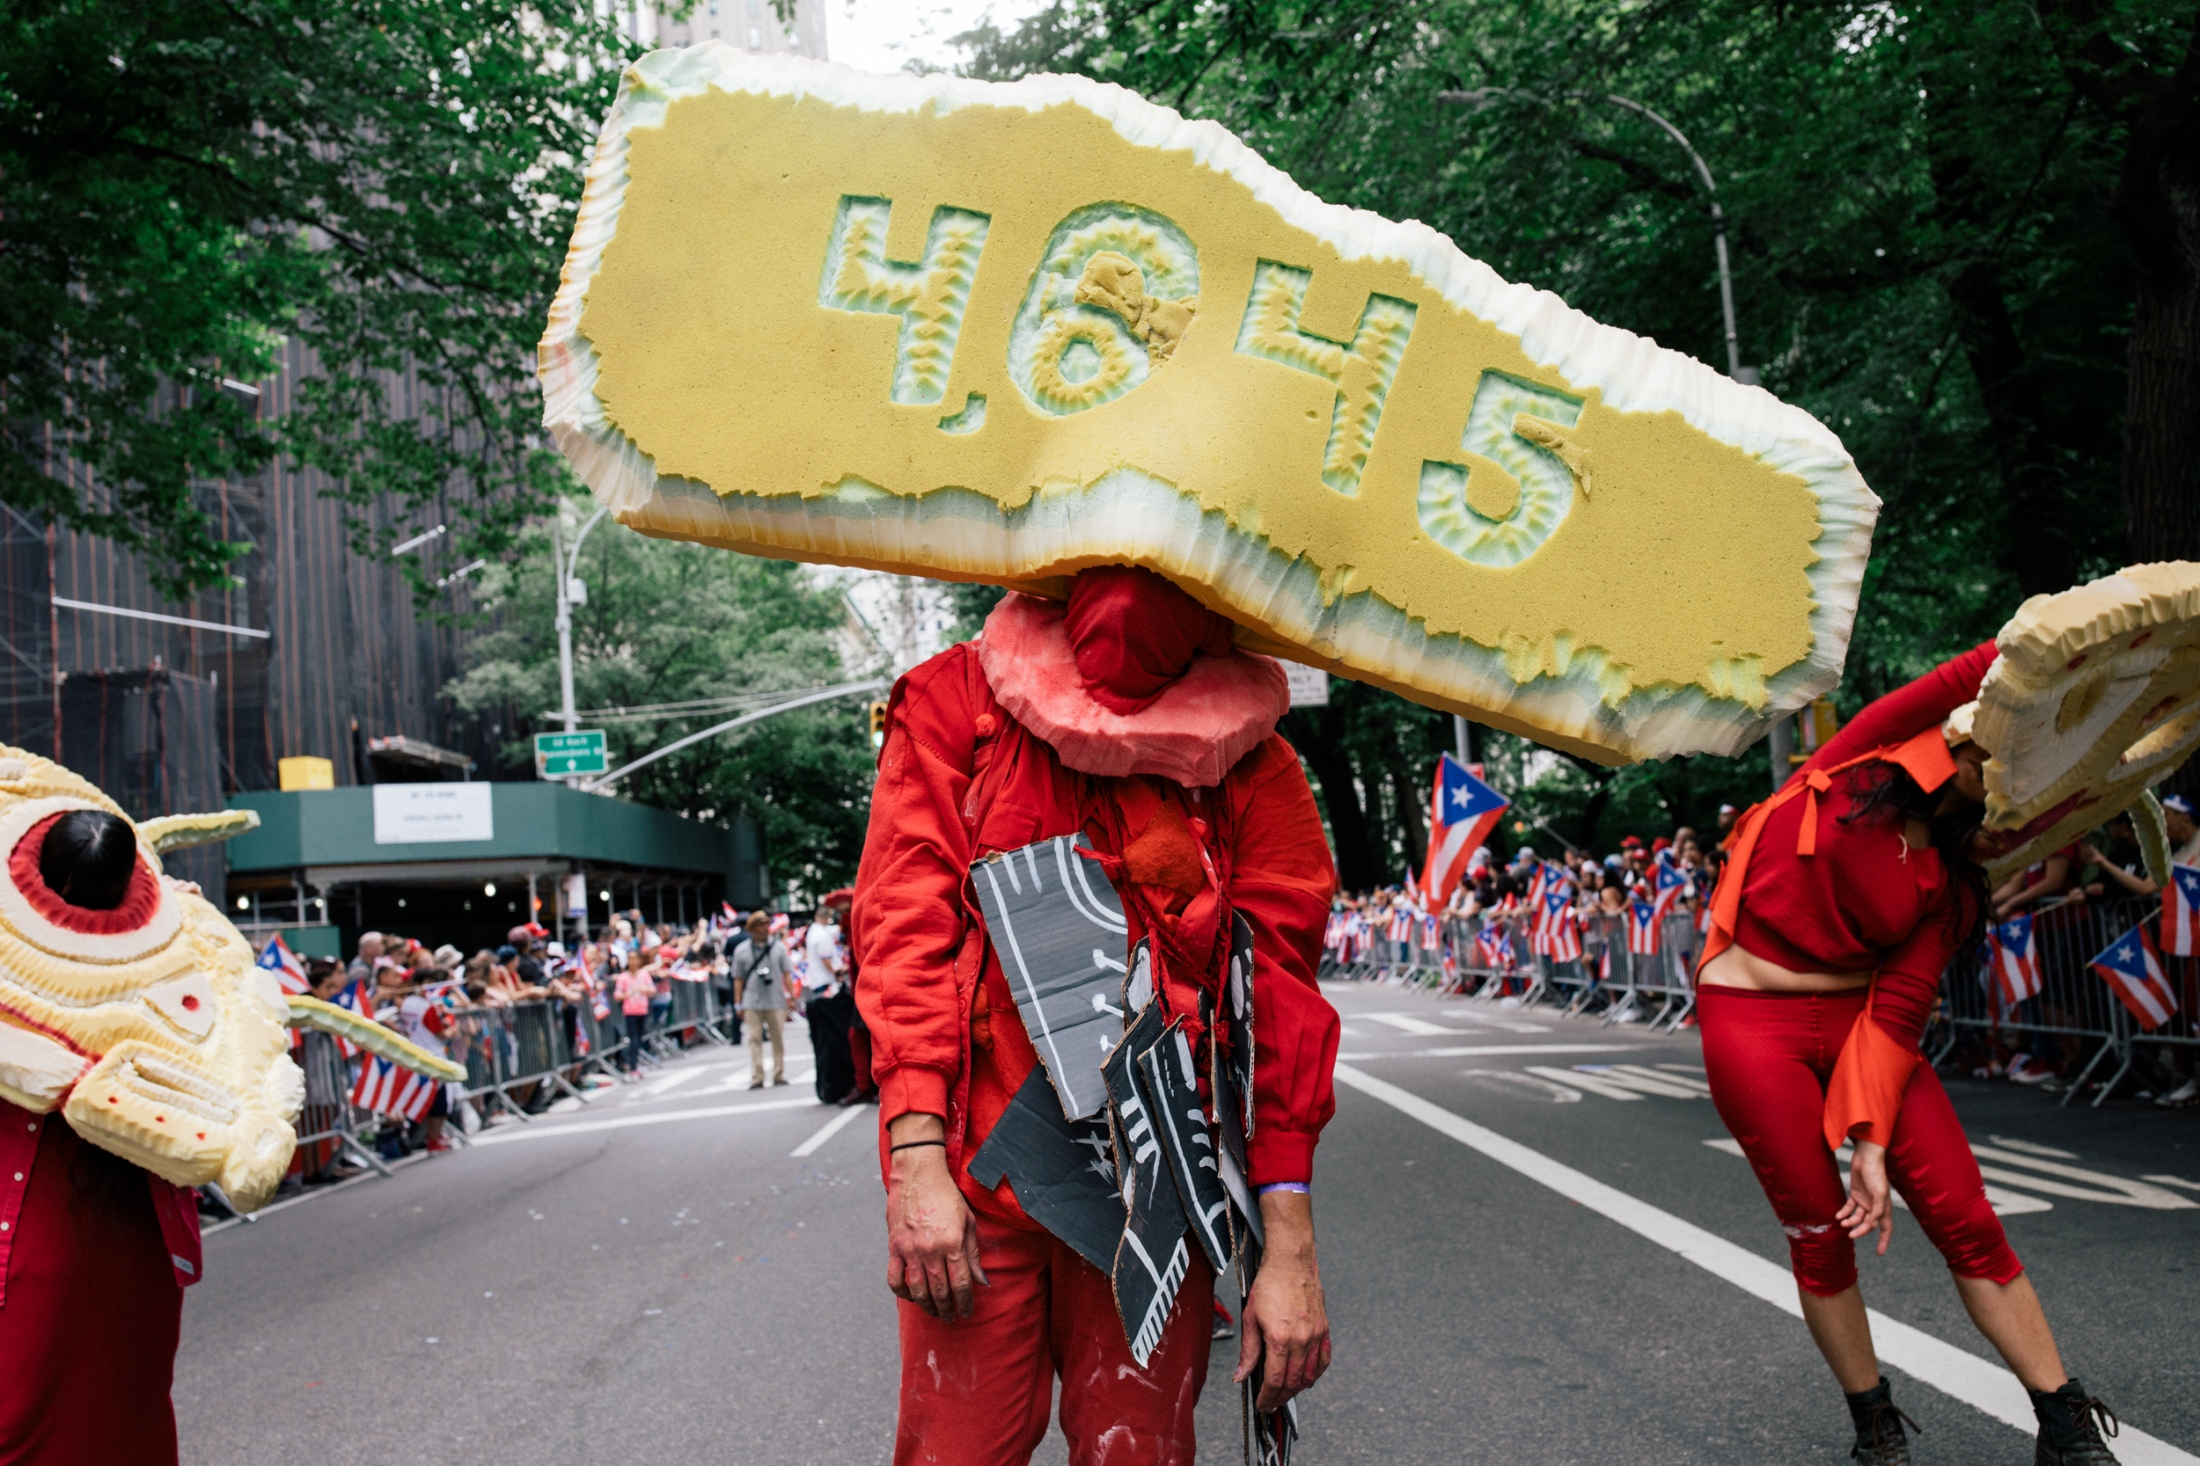 Puerto Rican performance art collective and sculptors Poncili Creación wear creations displaying the current estimated death toll from Hurricane Maria as the group dances down Fifth Avenue.